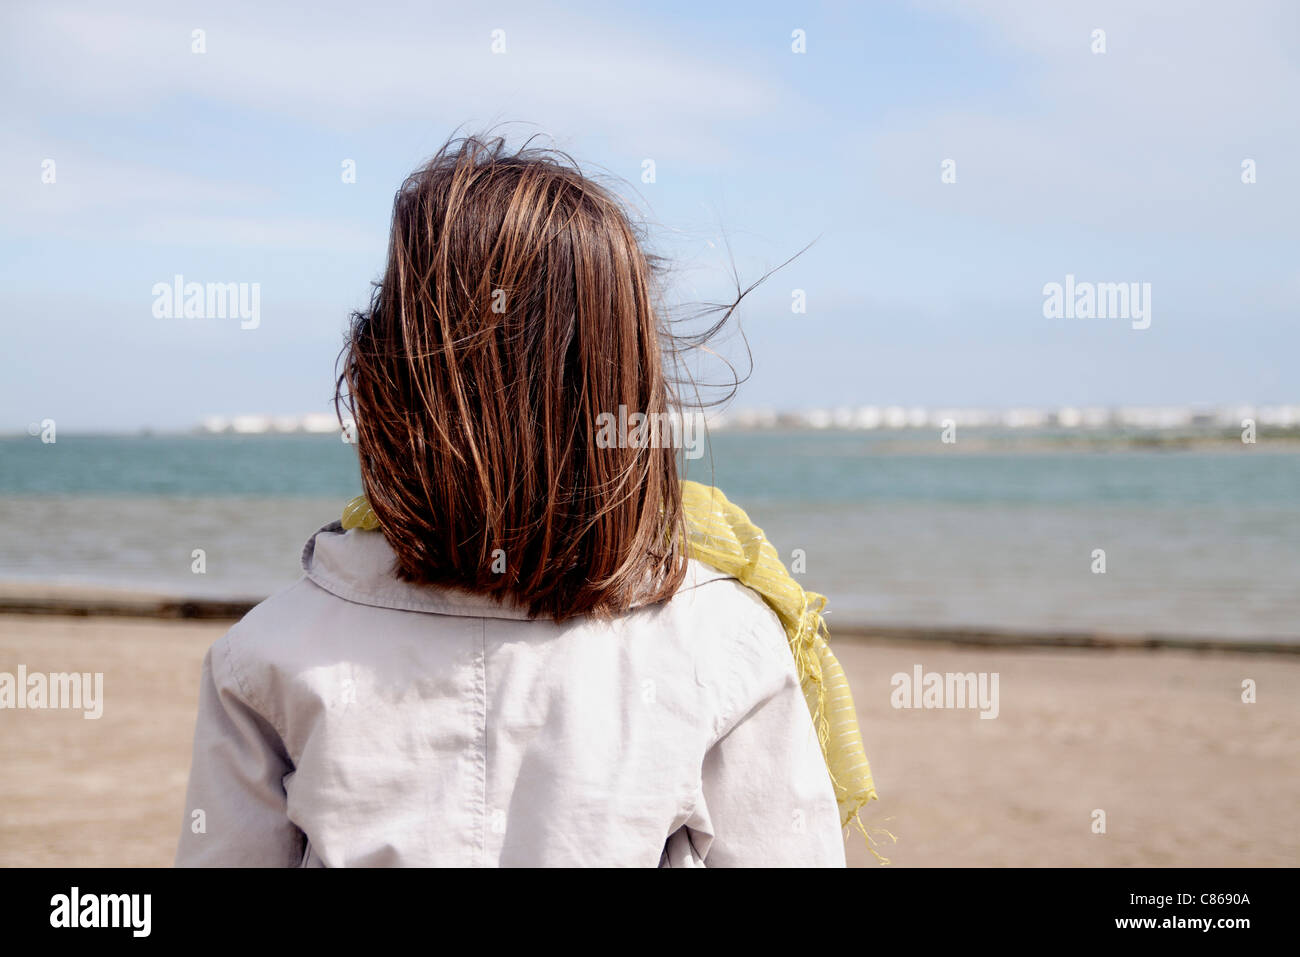 Girl looking at ocean, rear view - Stock Image